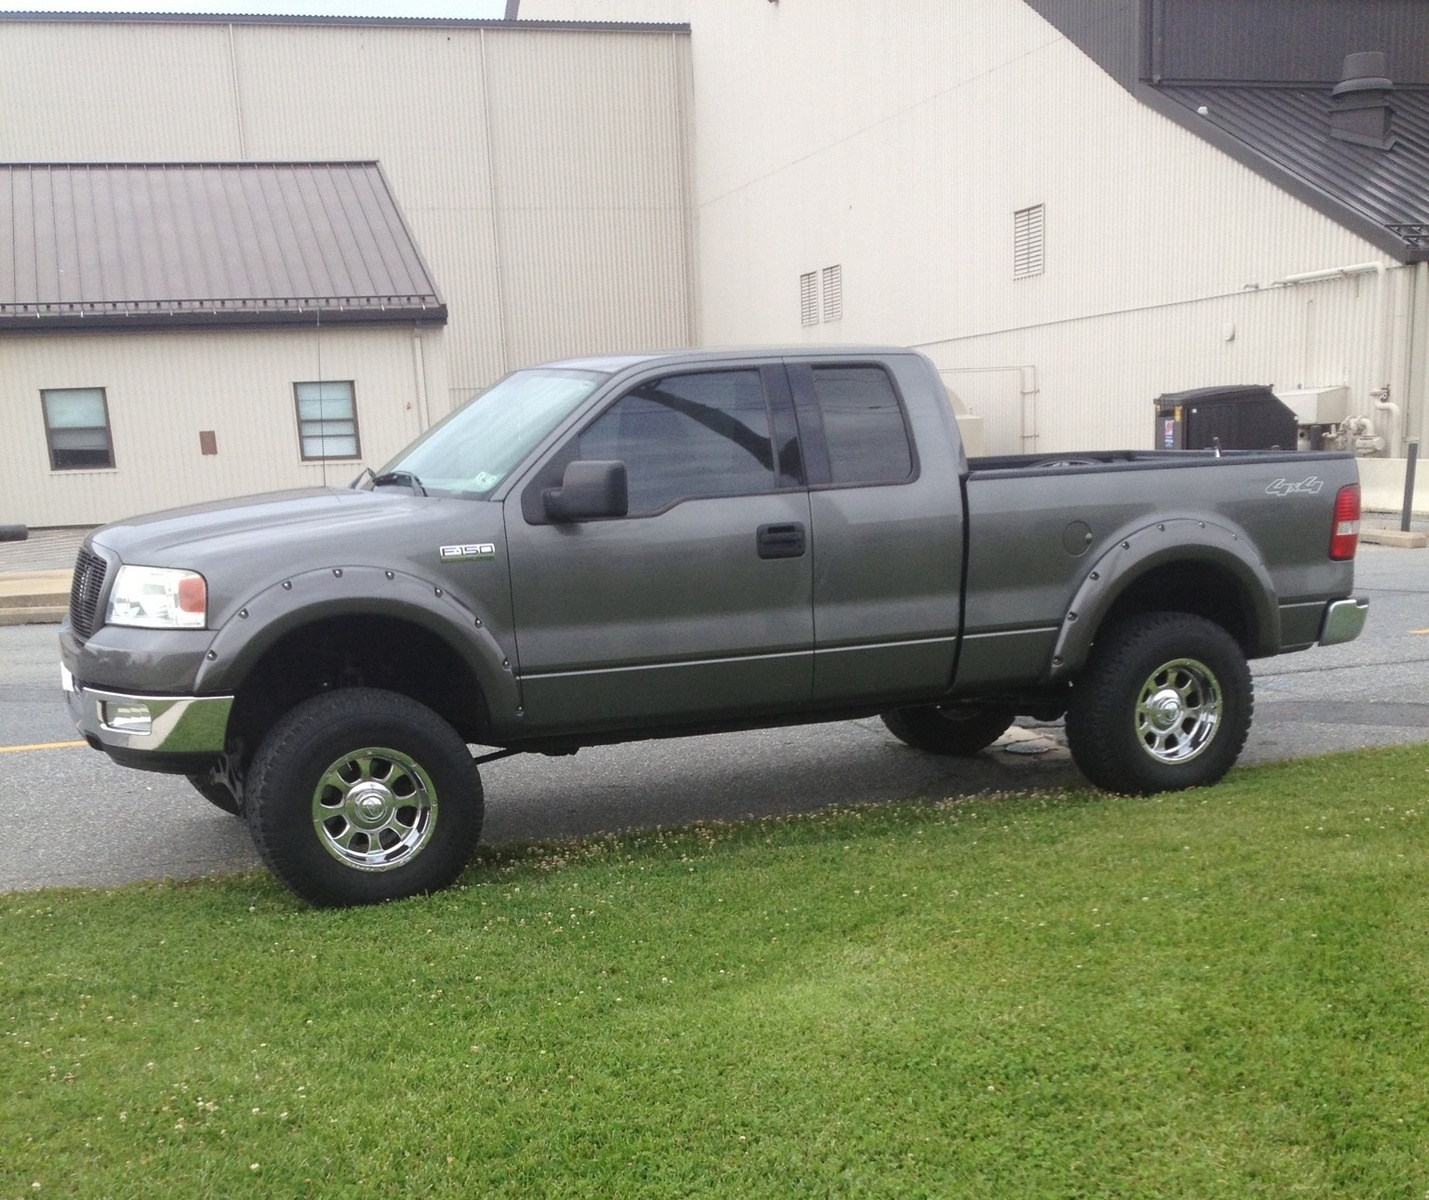 Used 2010 Ford F150: 2004 Ford F-150